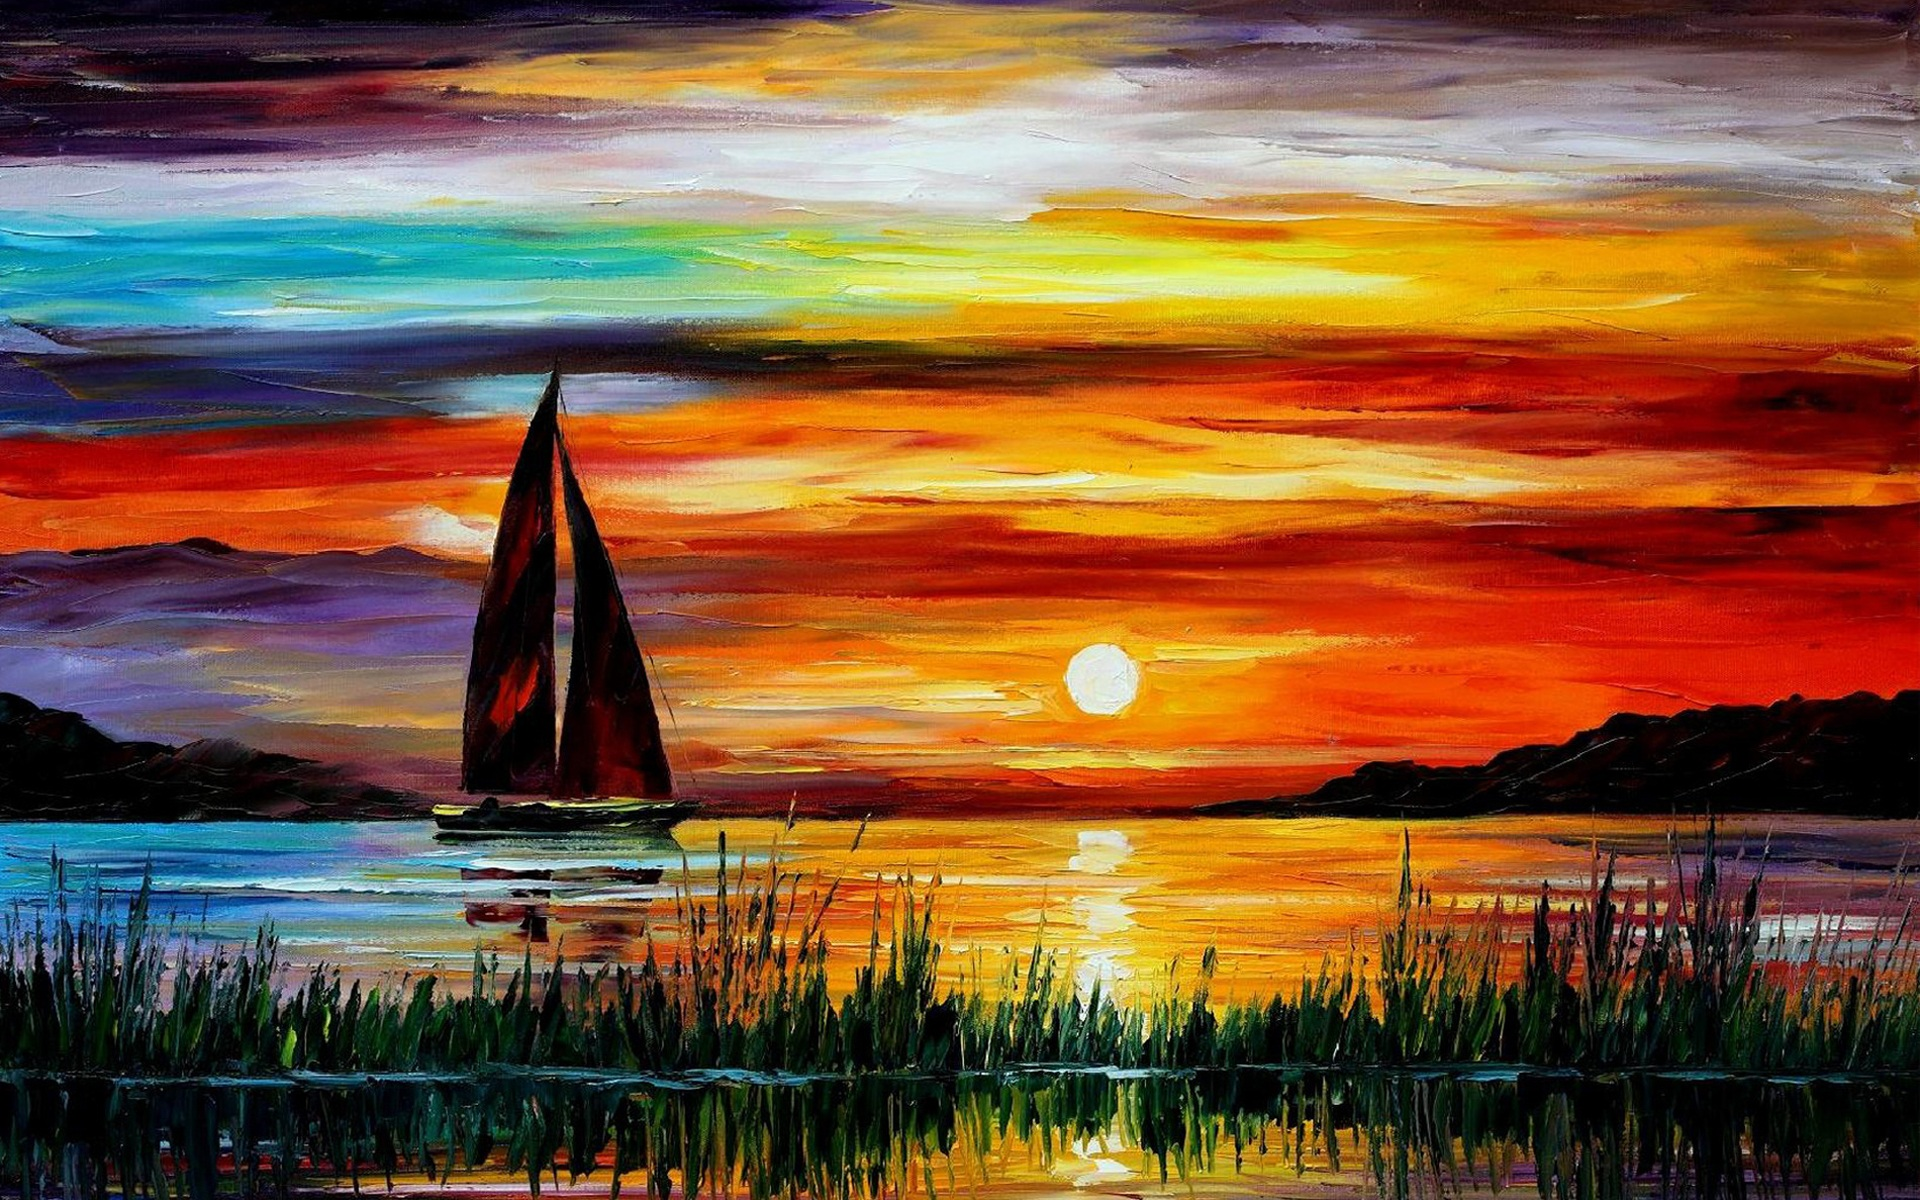 Oil Painting Images Download: 20 HD Art Painting Wallpapers